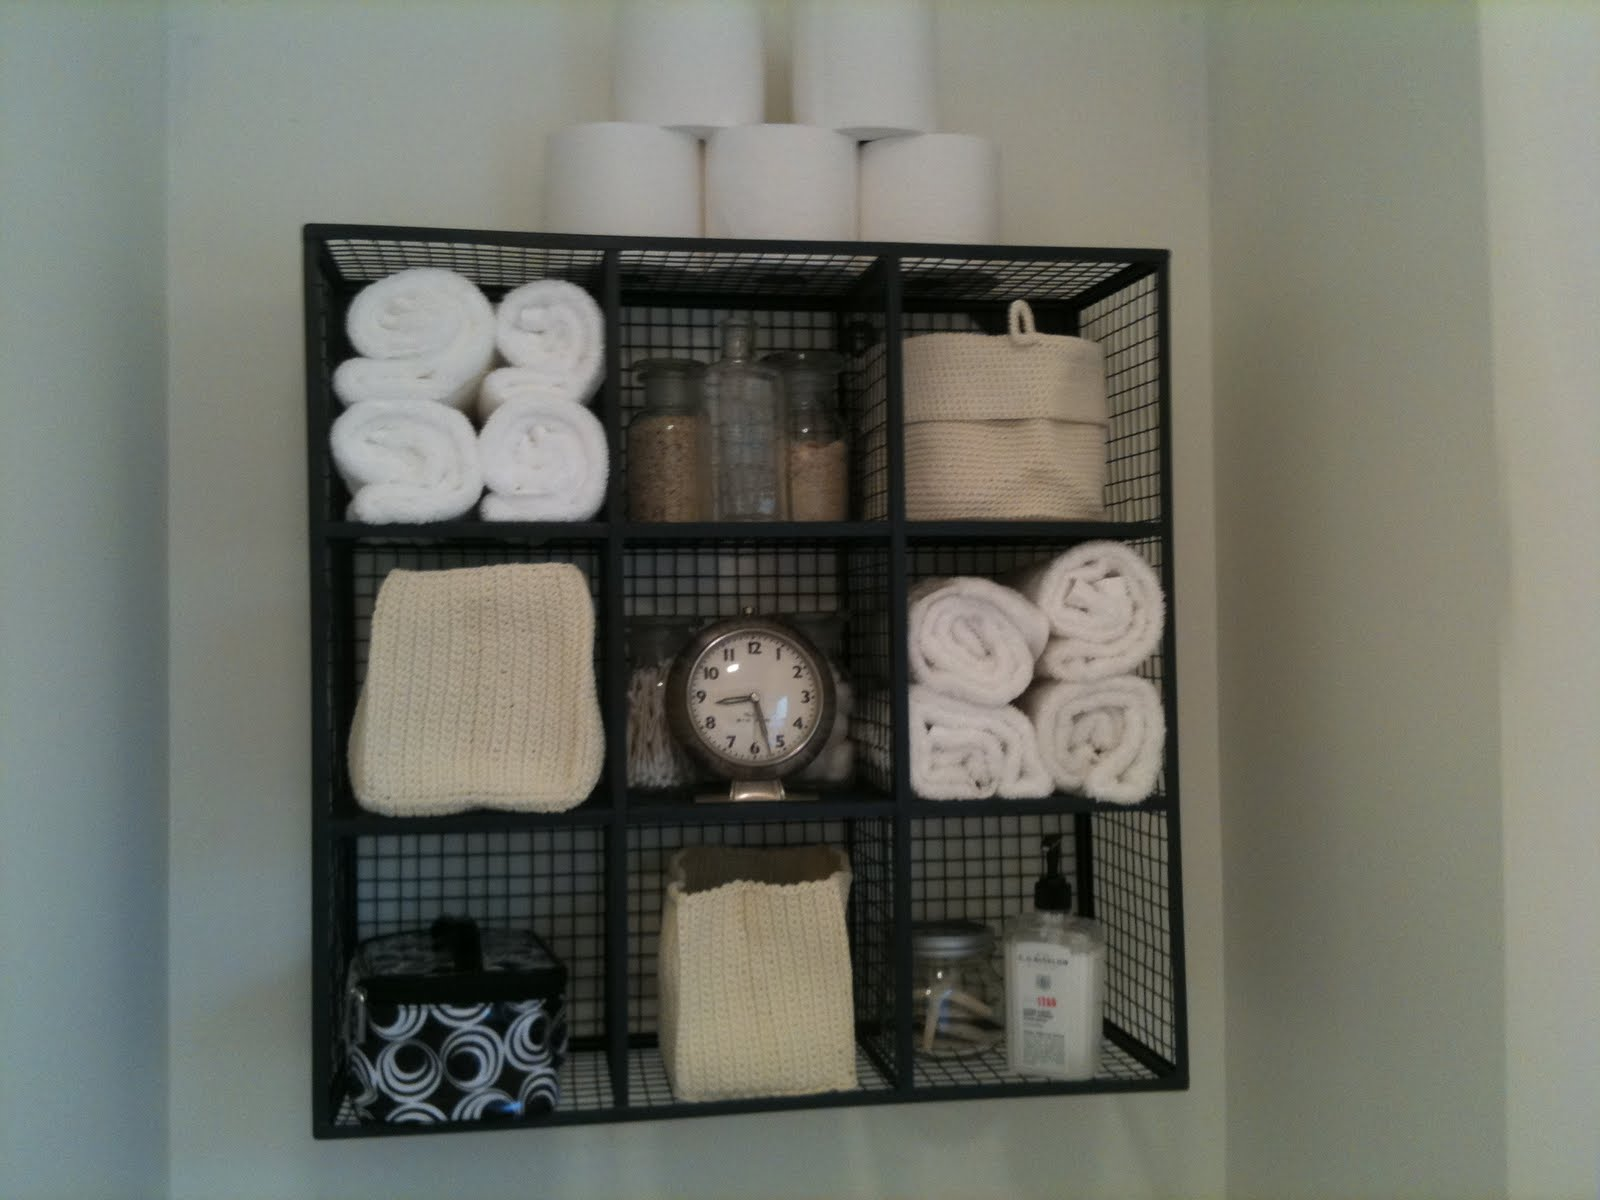 17 brilliant over the toilet storage ideas for Bathroom over the toilet shelf